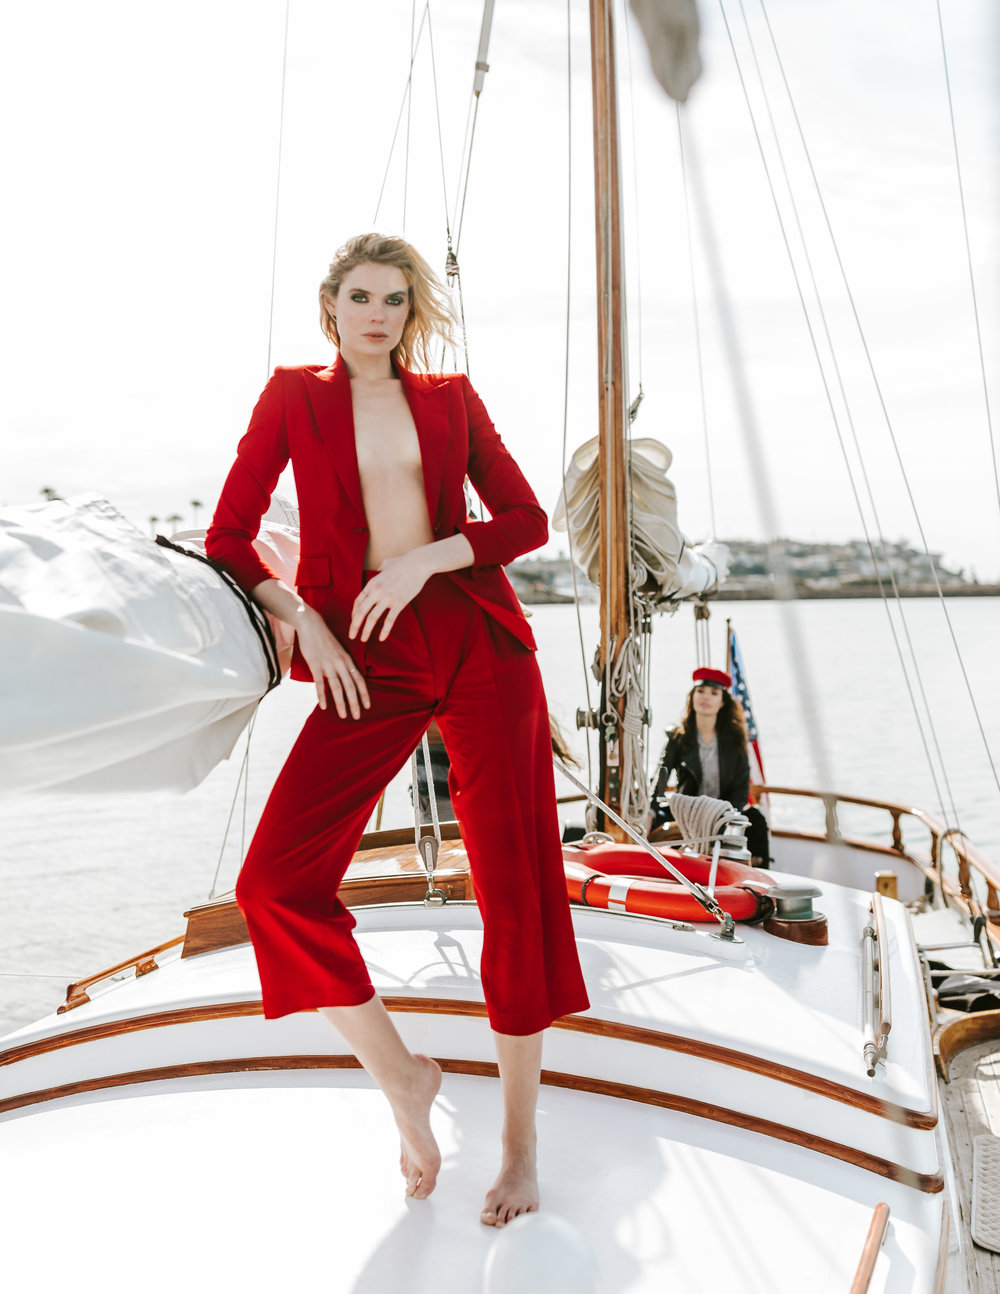 Sailing Editorials (31 of 36).jpg